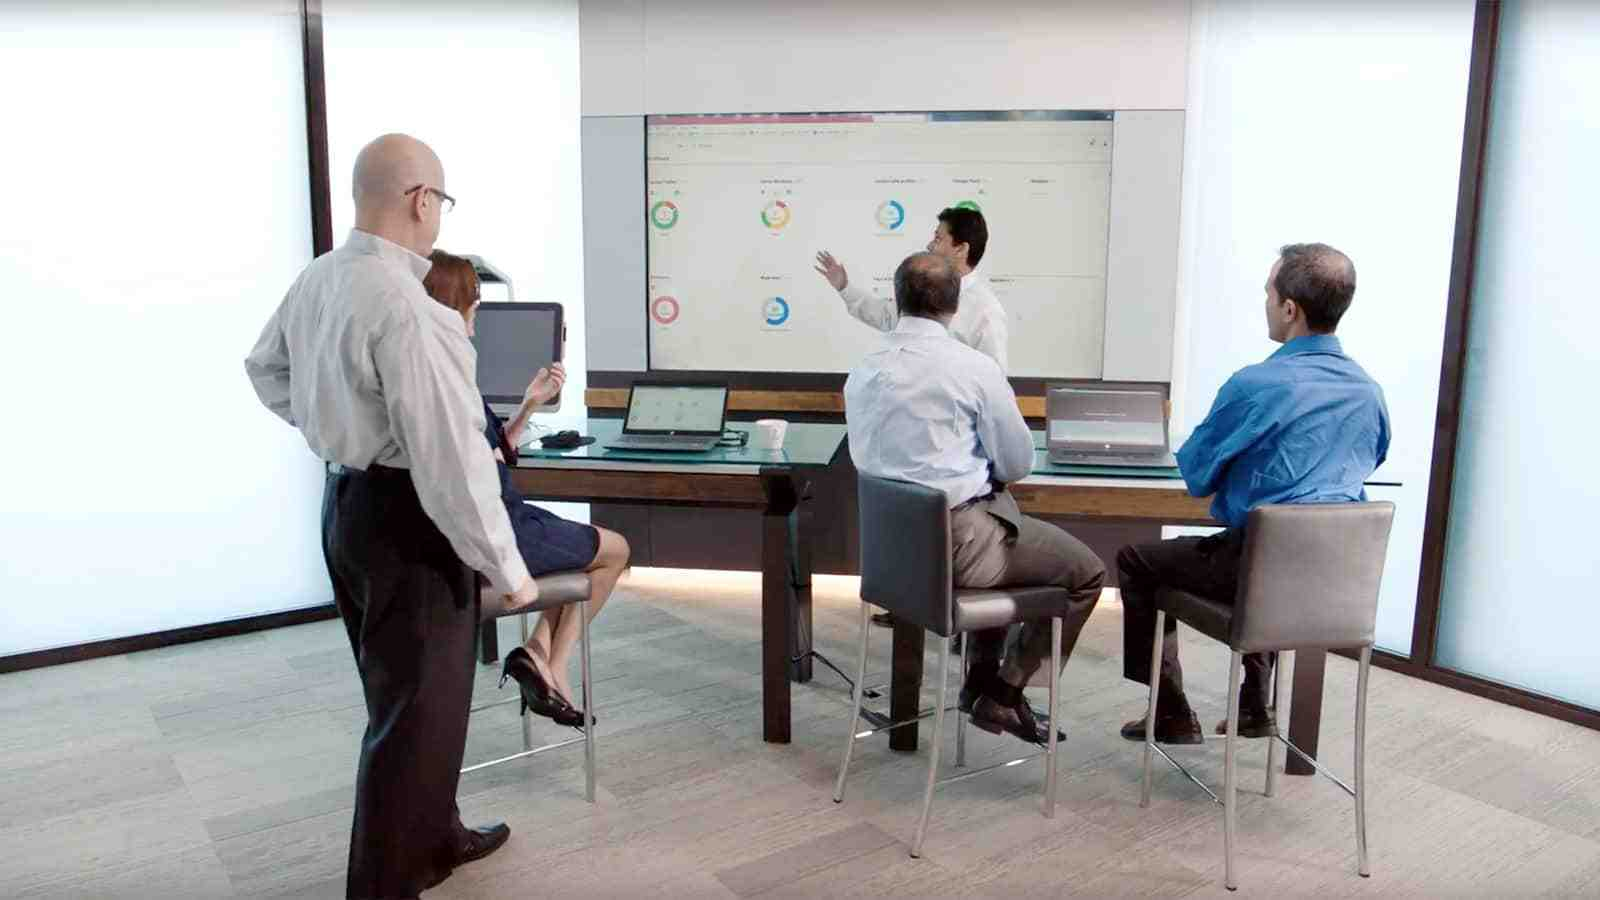 HPE expert give presentation at the HPE Customer Engagement Center in New York City.